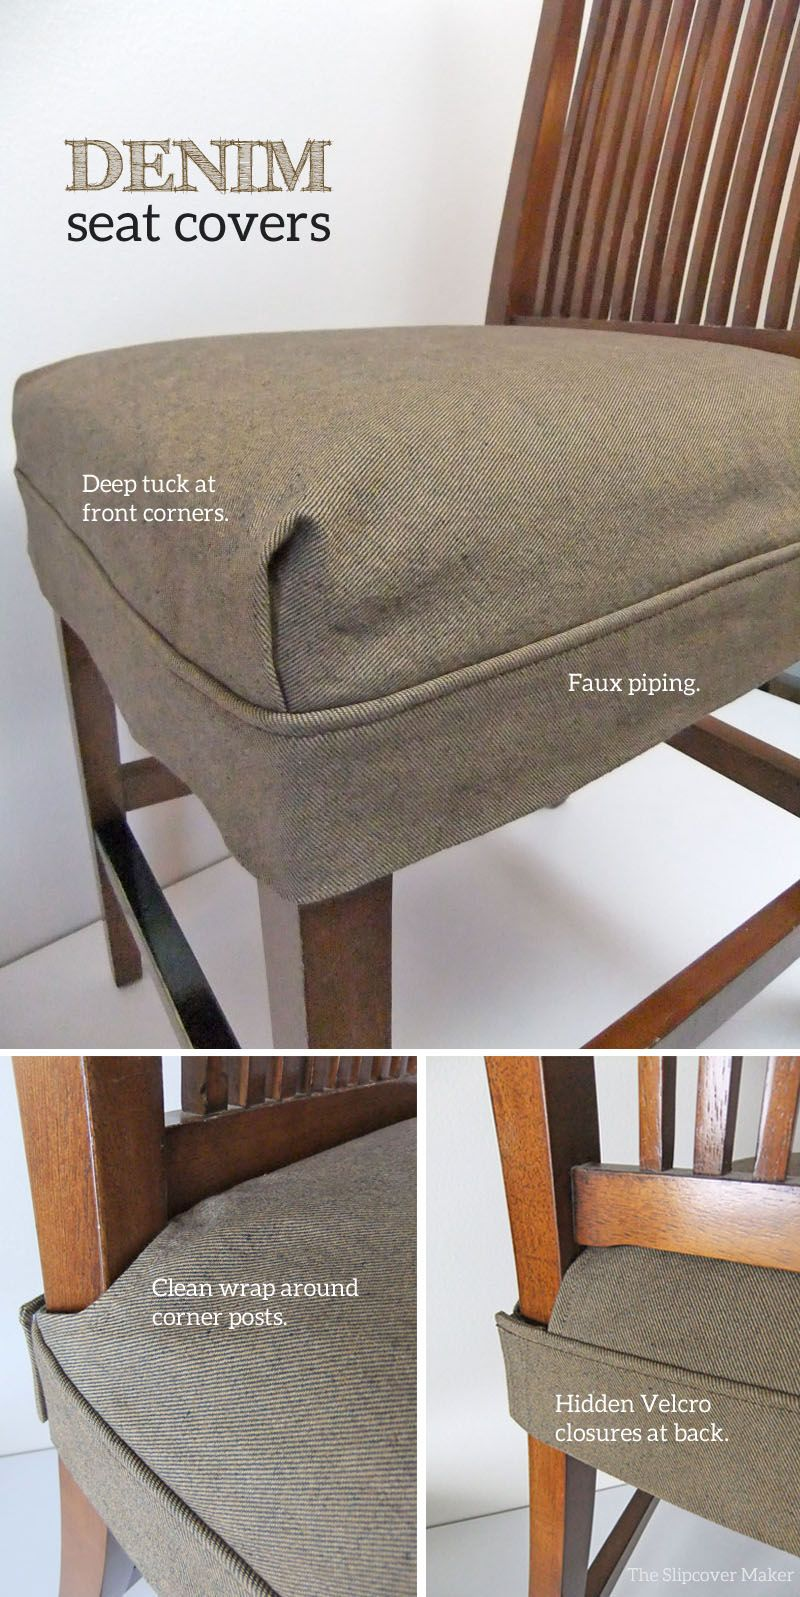 Washable Seat Covers For Dining Room Chairs Are A Smart Choice When Upholstery Becomes Stained And